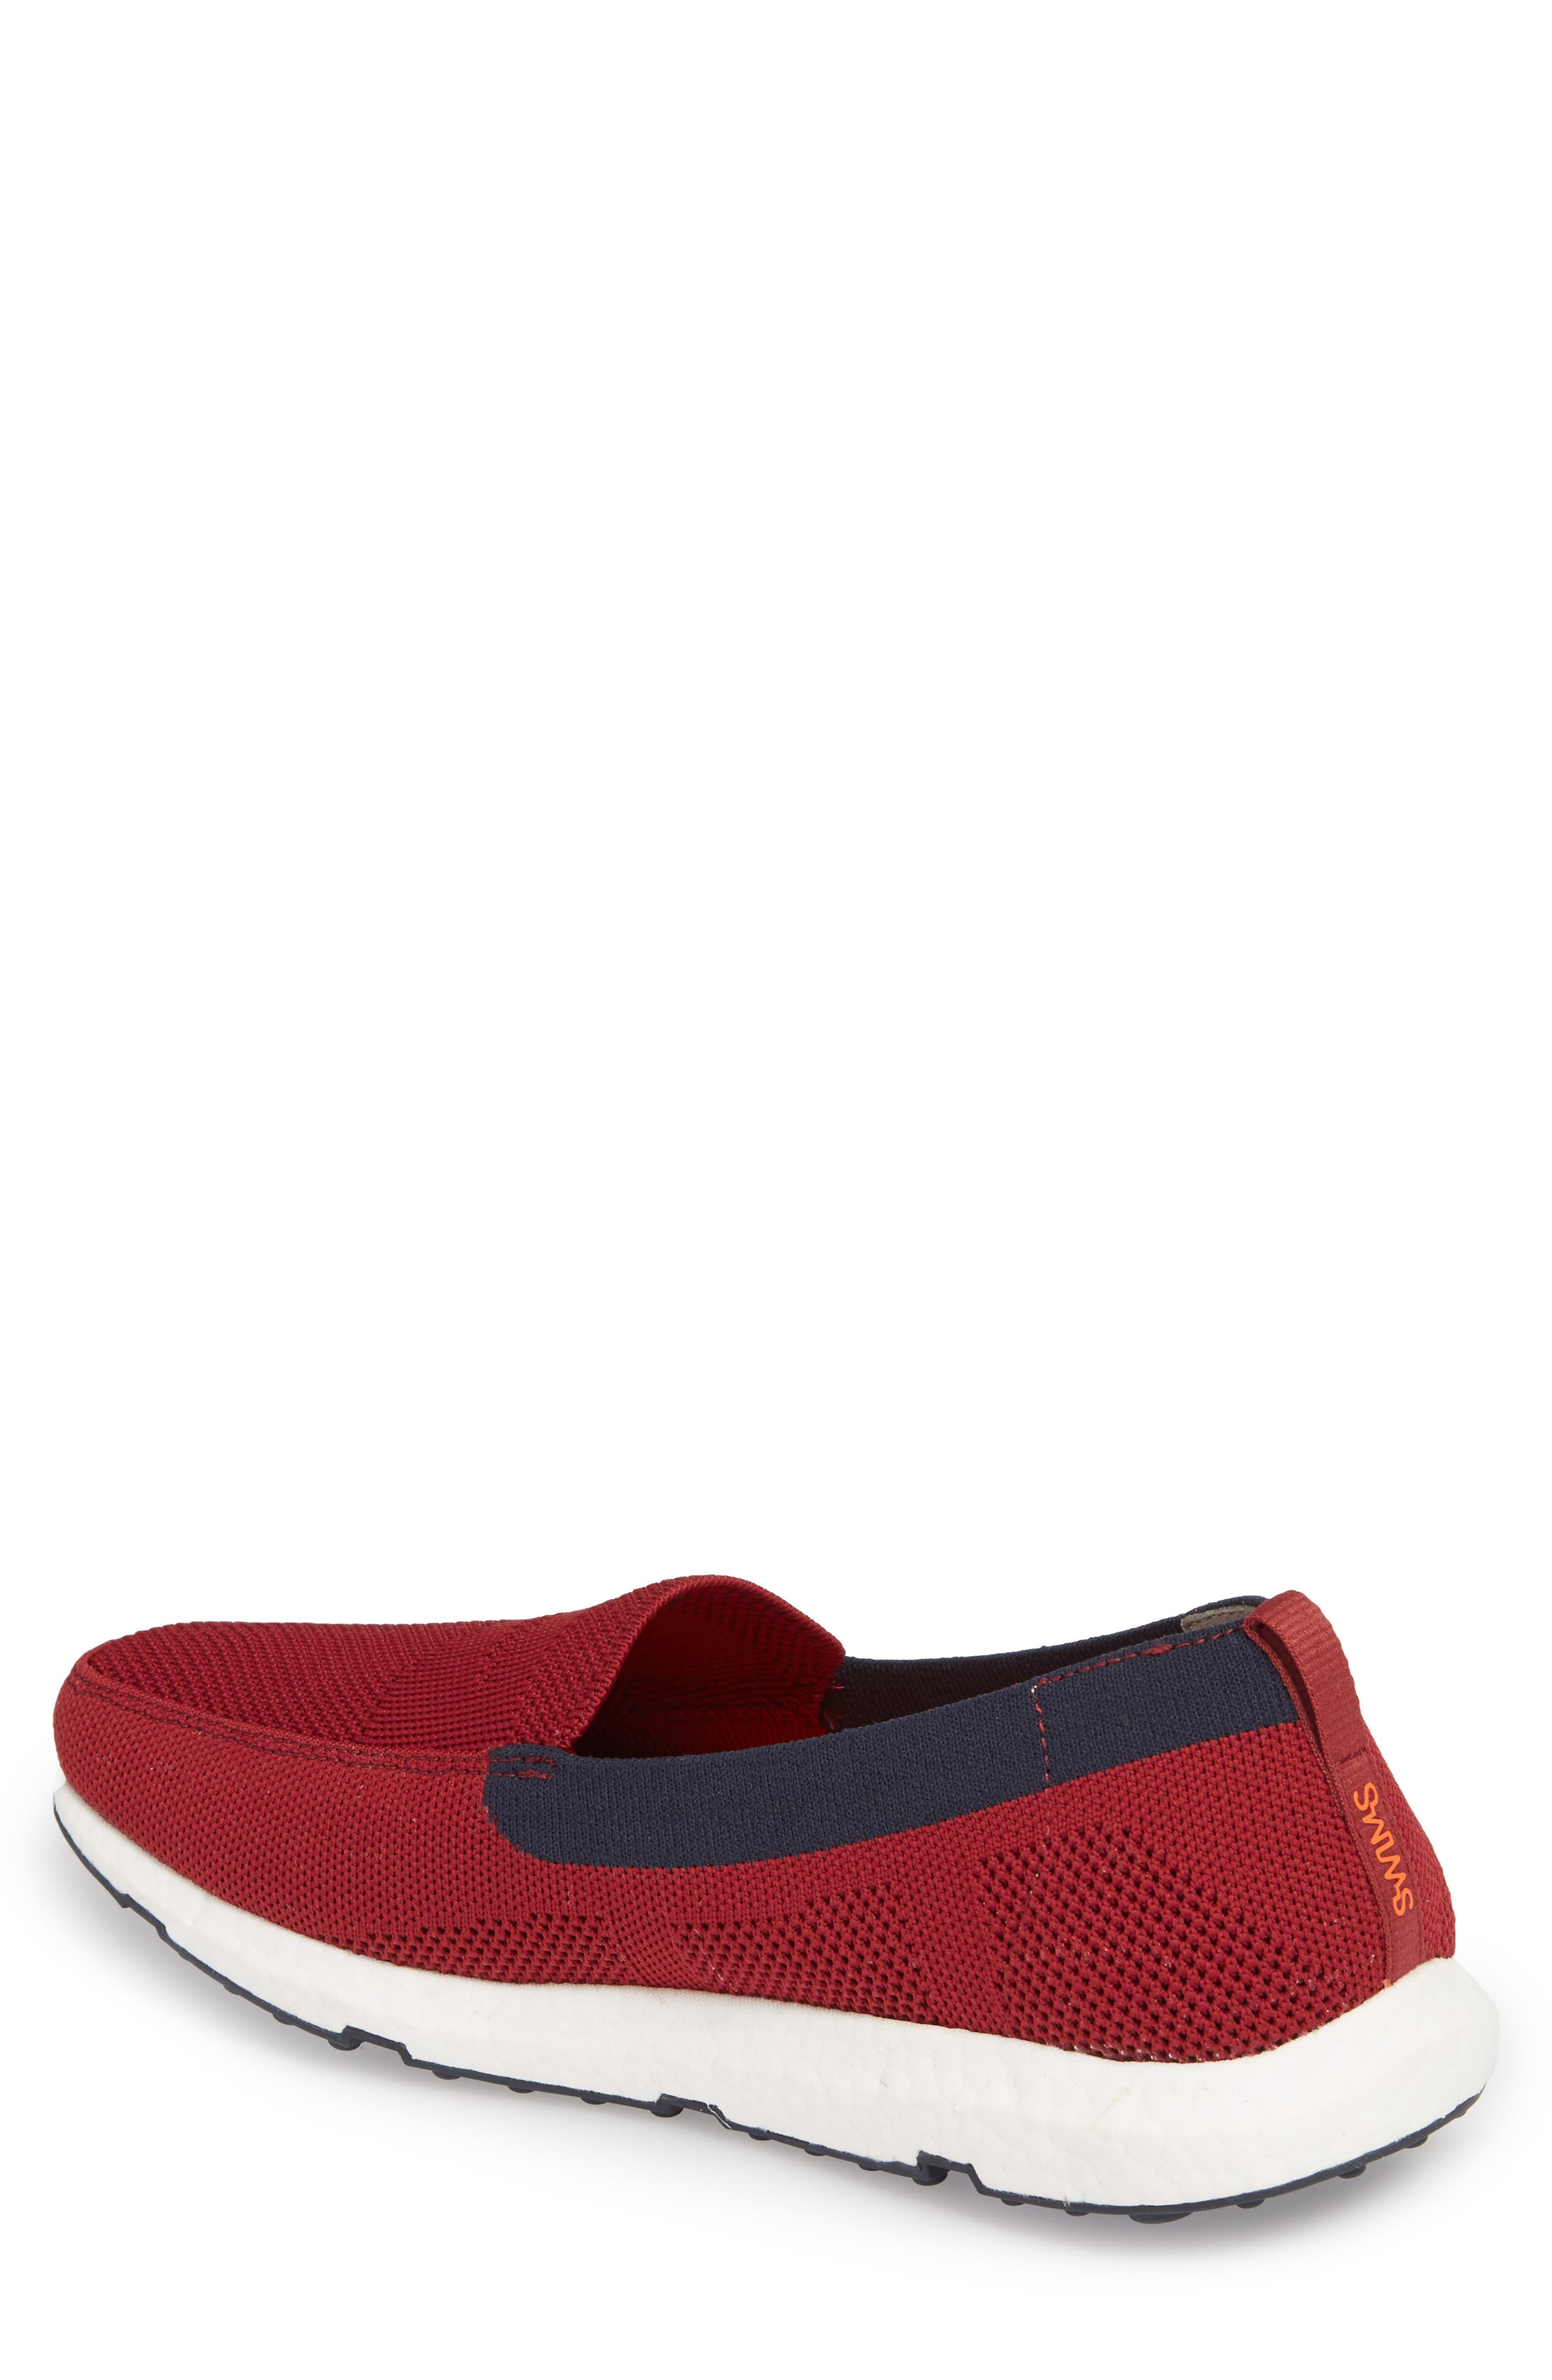 Breeze Leap Penny Loafer,                             Alternate thumbnail 2, color,                             600